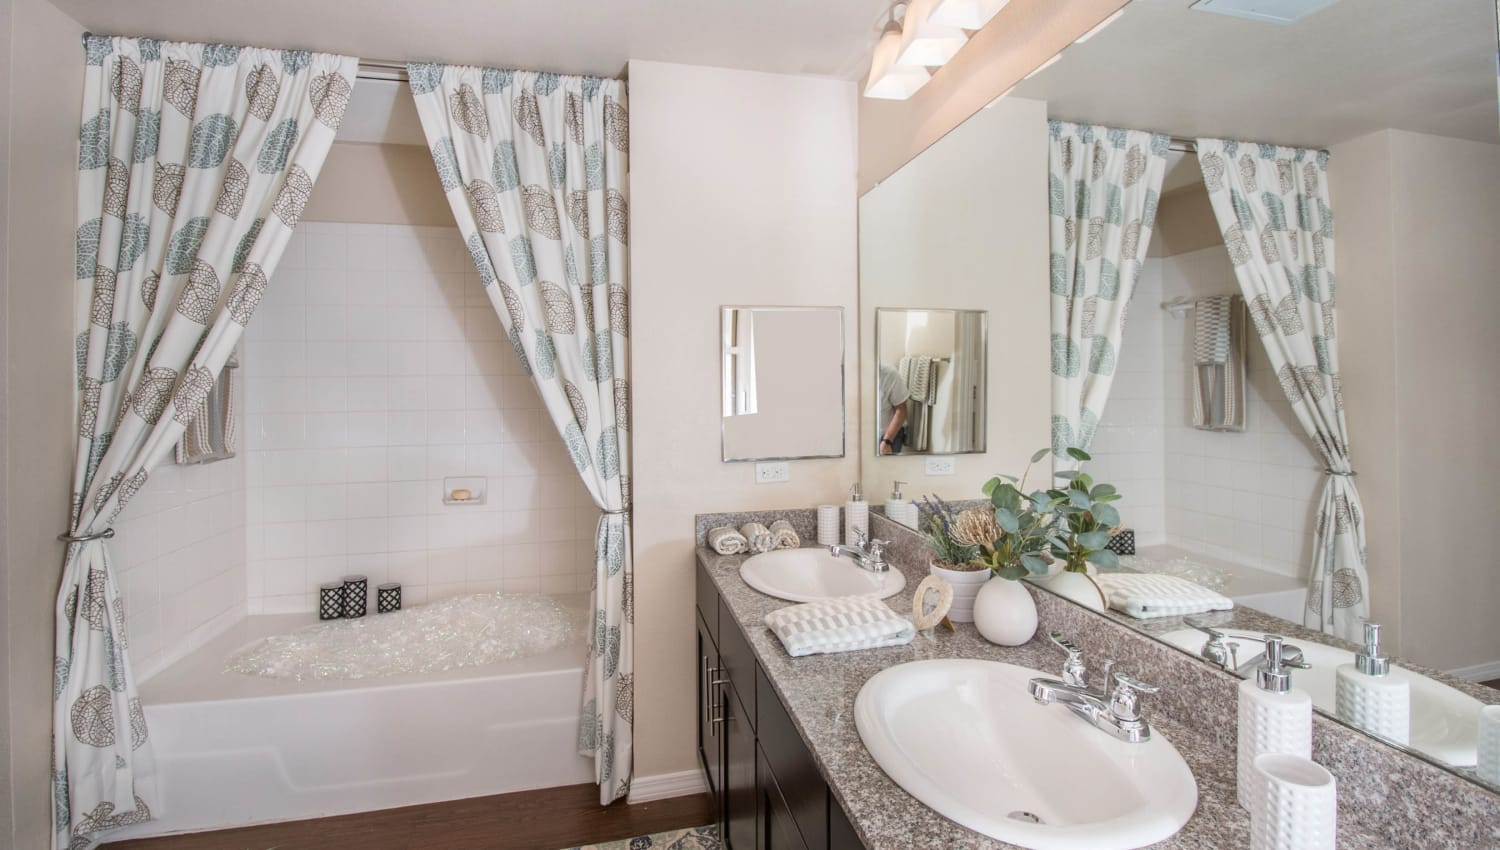 Master bathroom with an oval tub and two sinks in a model apartment at Carrington Oaks in Buda, Texas